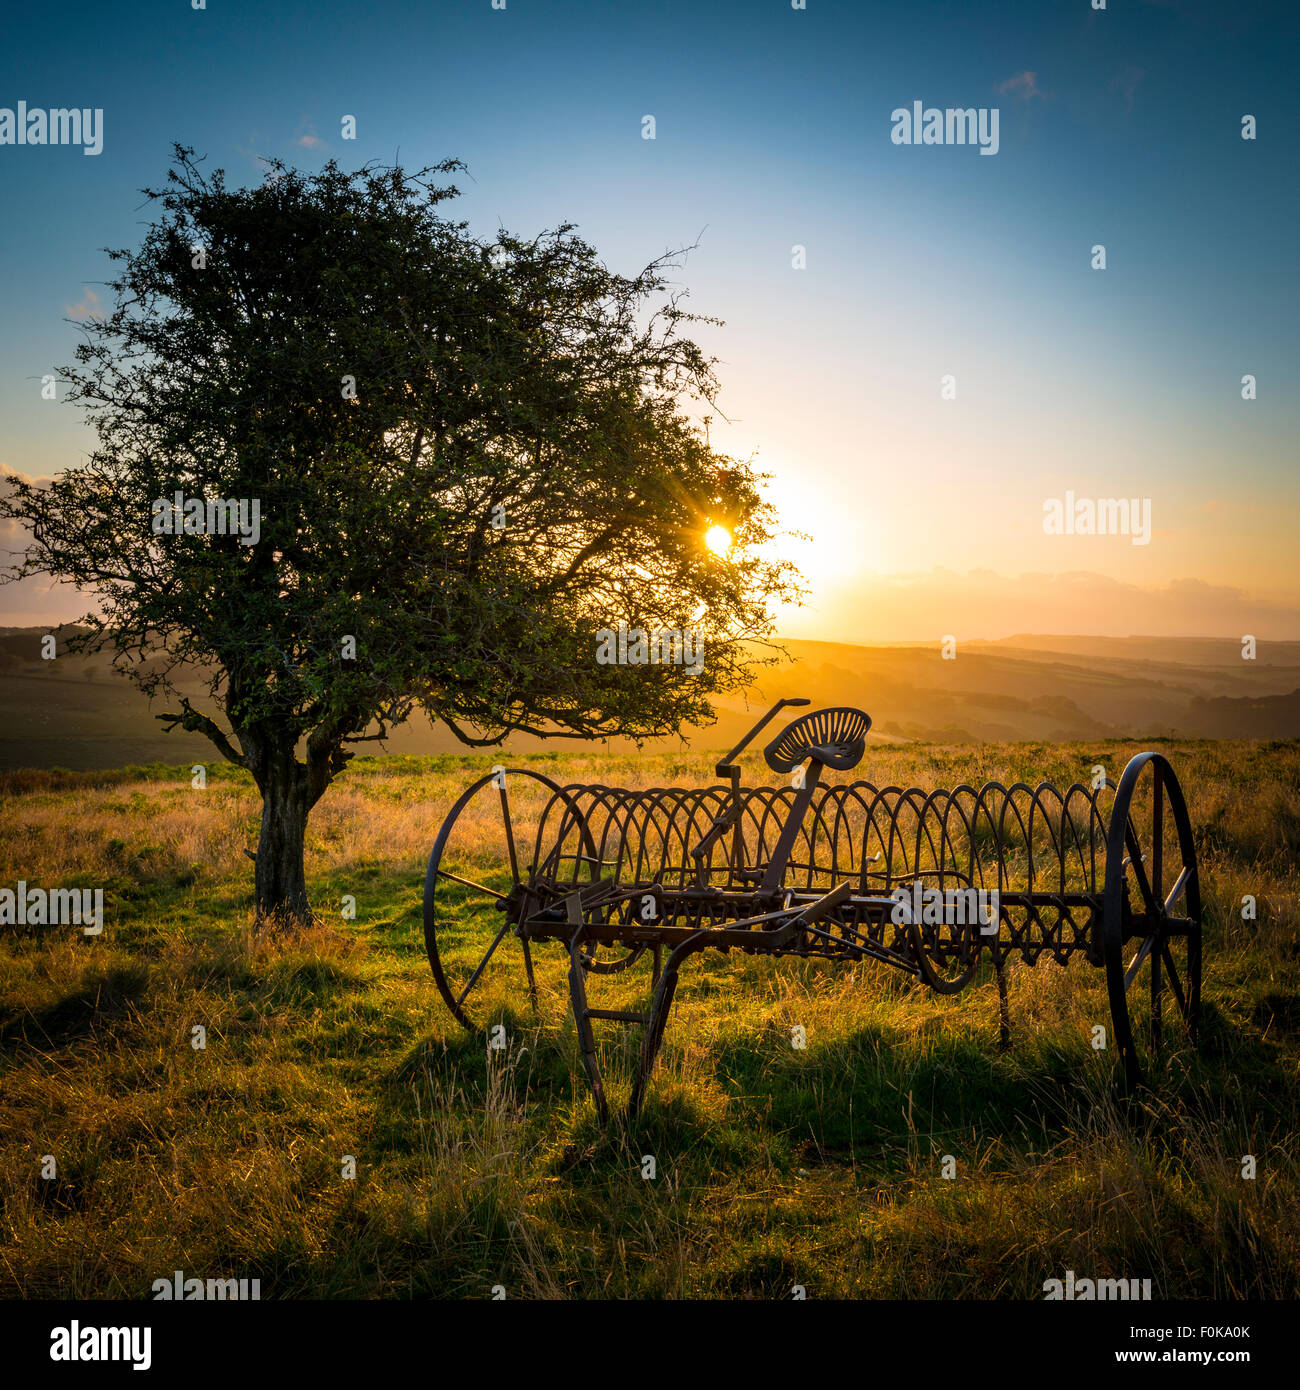 Old abandon farm equipment on the moorlands of Exmoor. - Stock Image